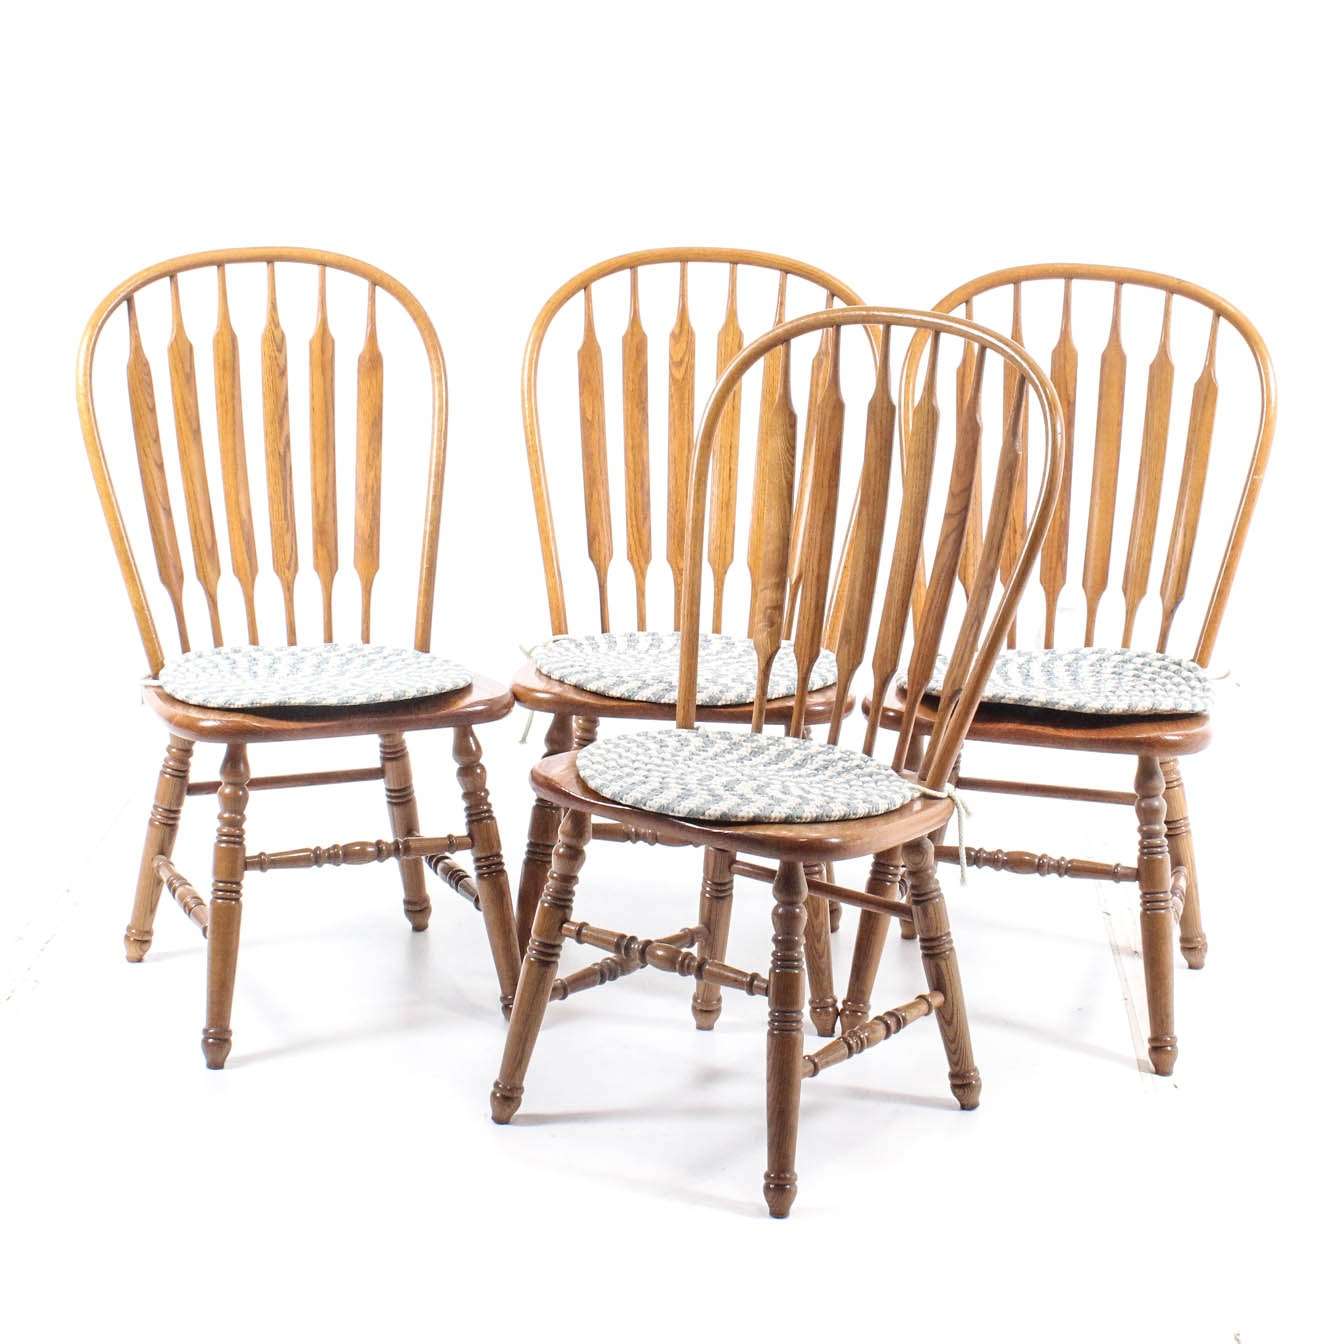 Cochrane Arrowback Dining Chairs